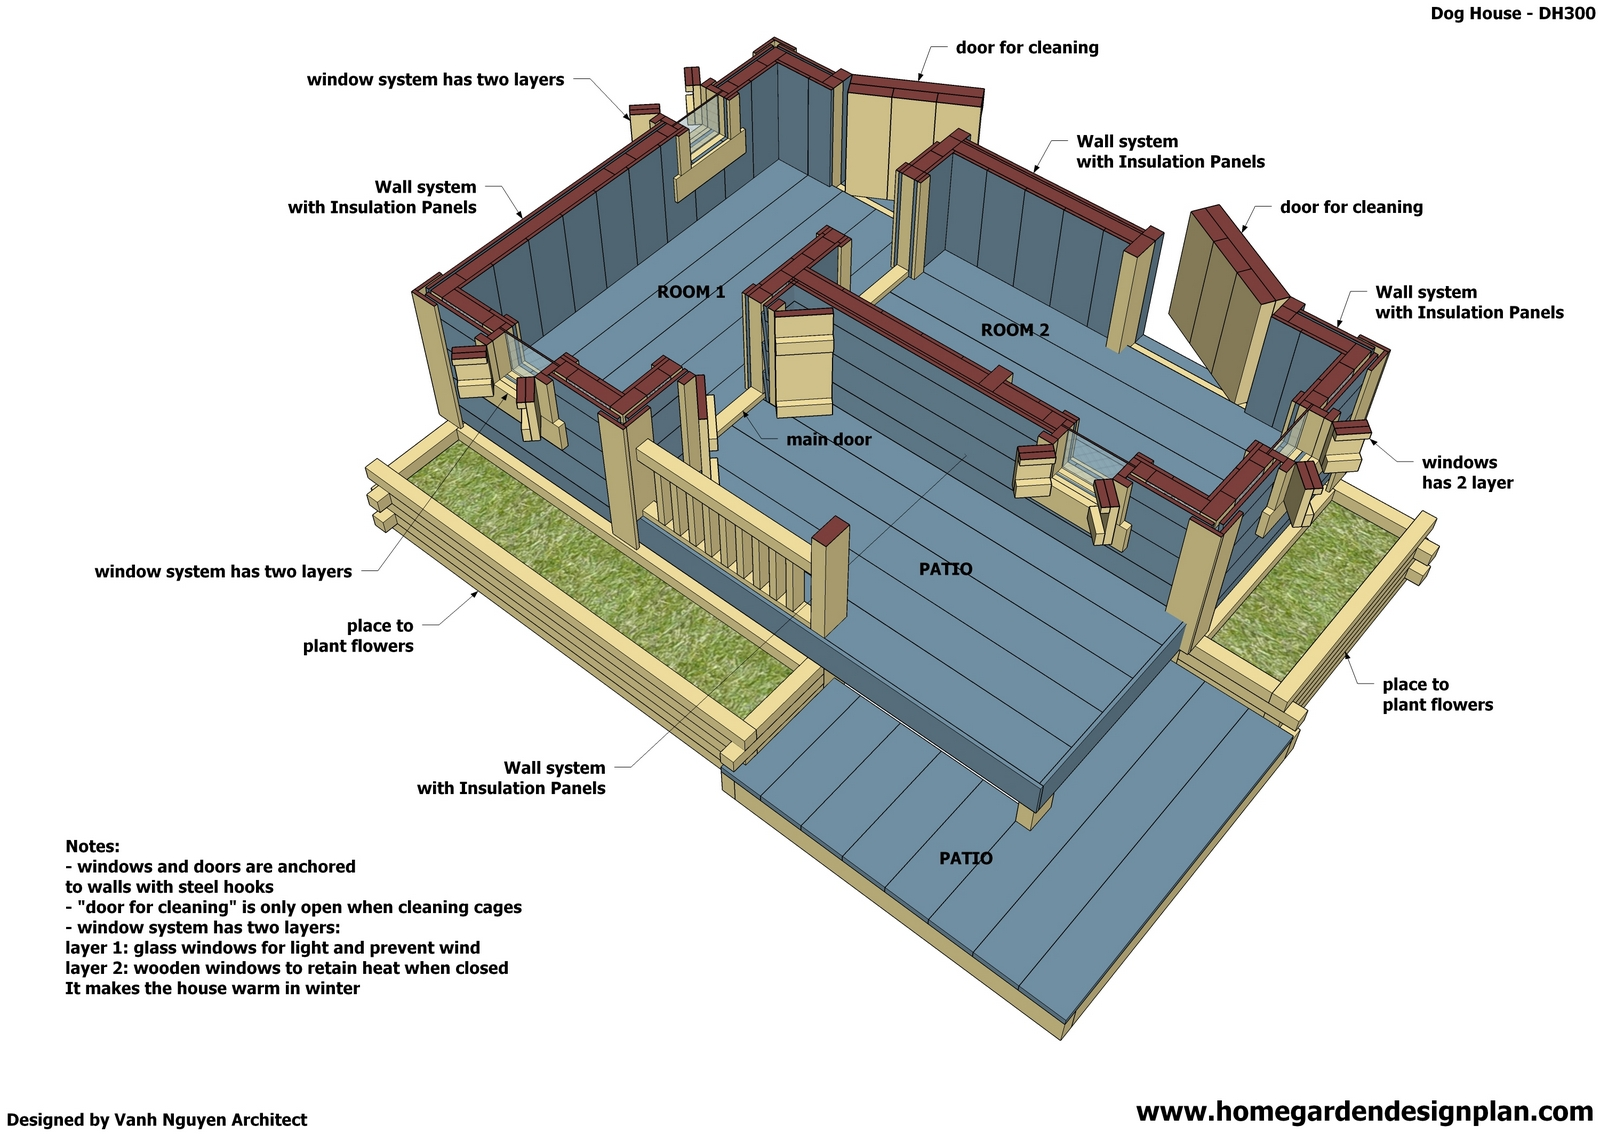 Woodwork 2 Dog House Plans Free Pdf Plans